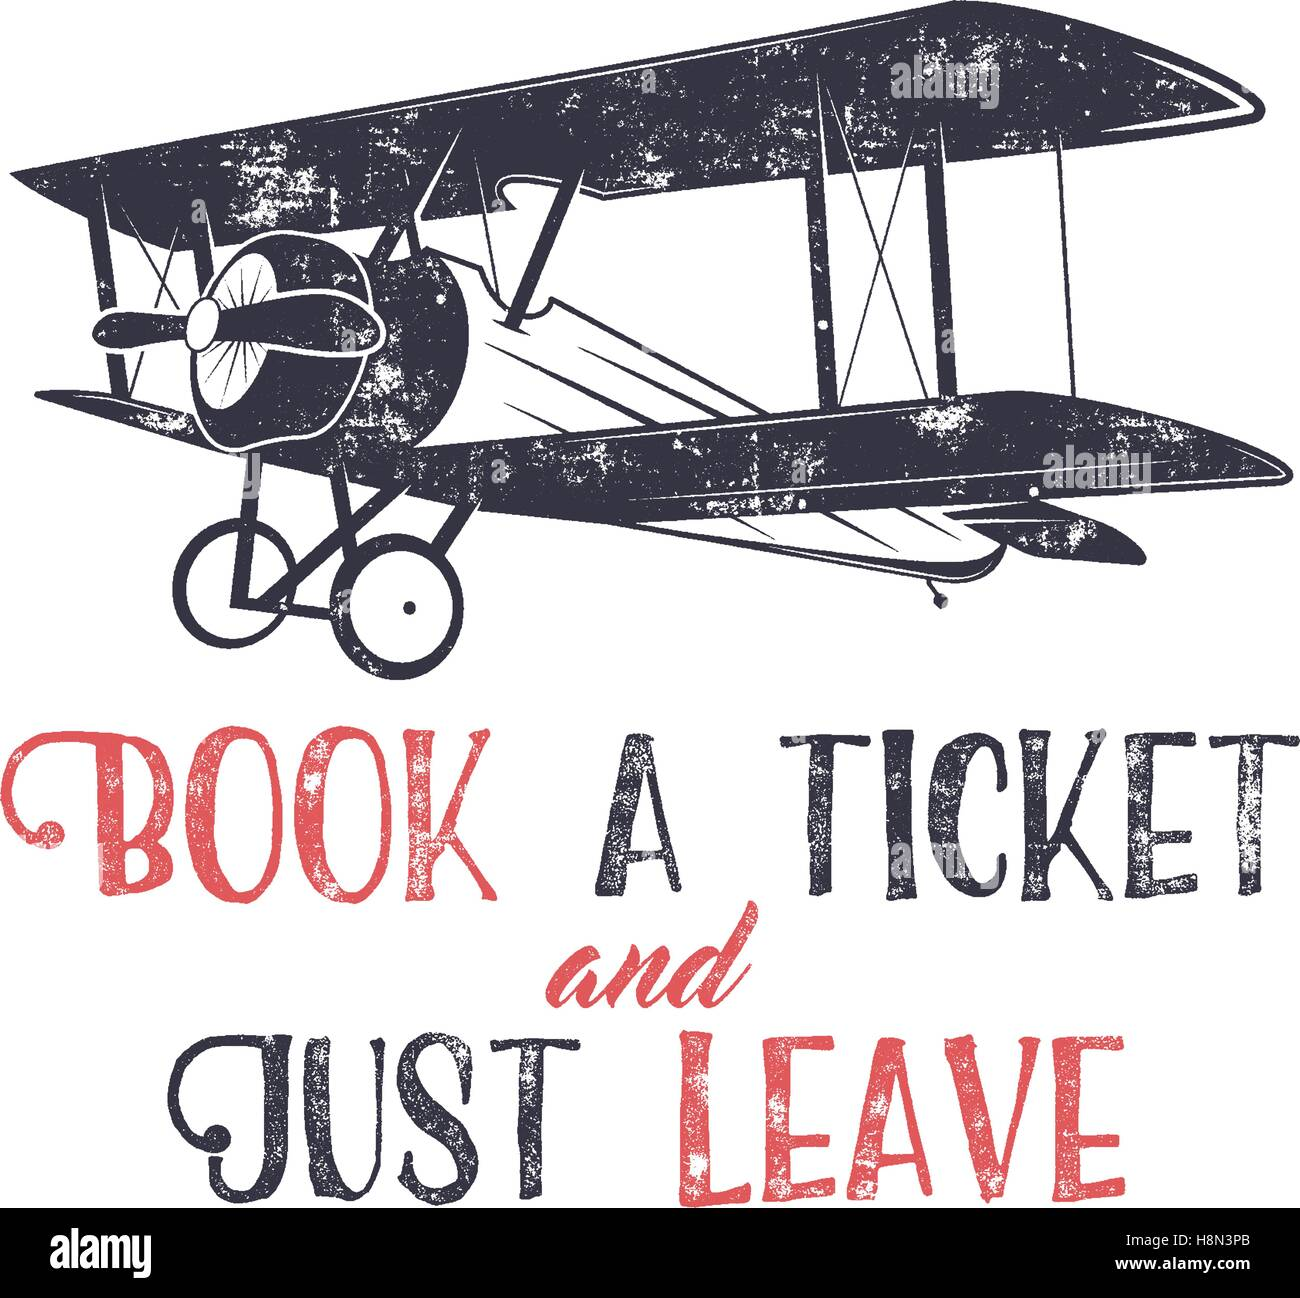 T shirt design inspiration typography - Stock Vector Vintage Airplane Typography Poster Lettering And Old Biplane Symbol For Printing Vector Inspiration Tee Design Retro T Shirt Print Design